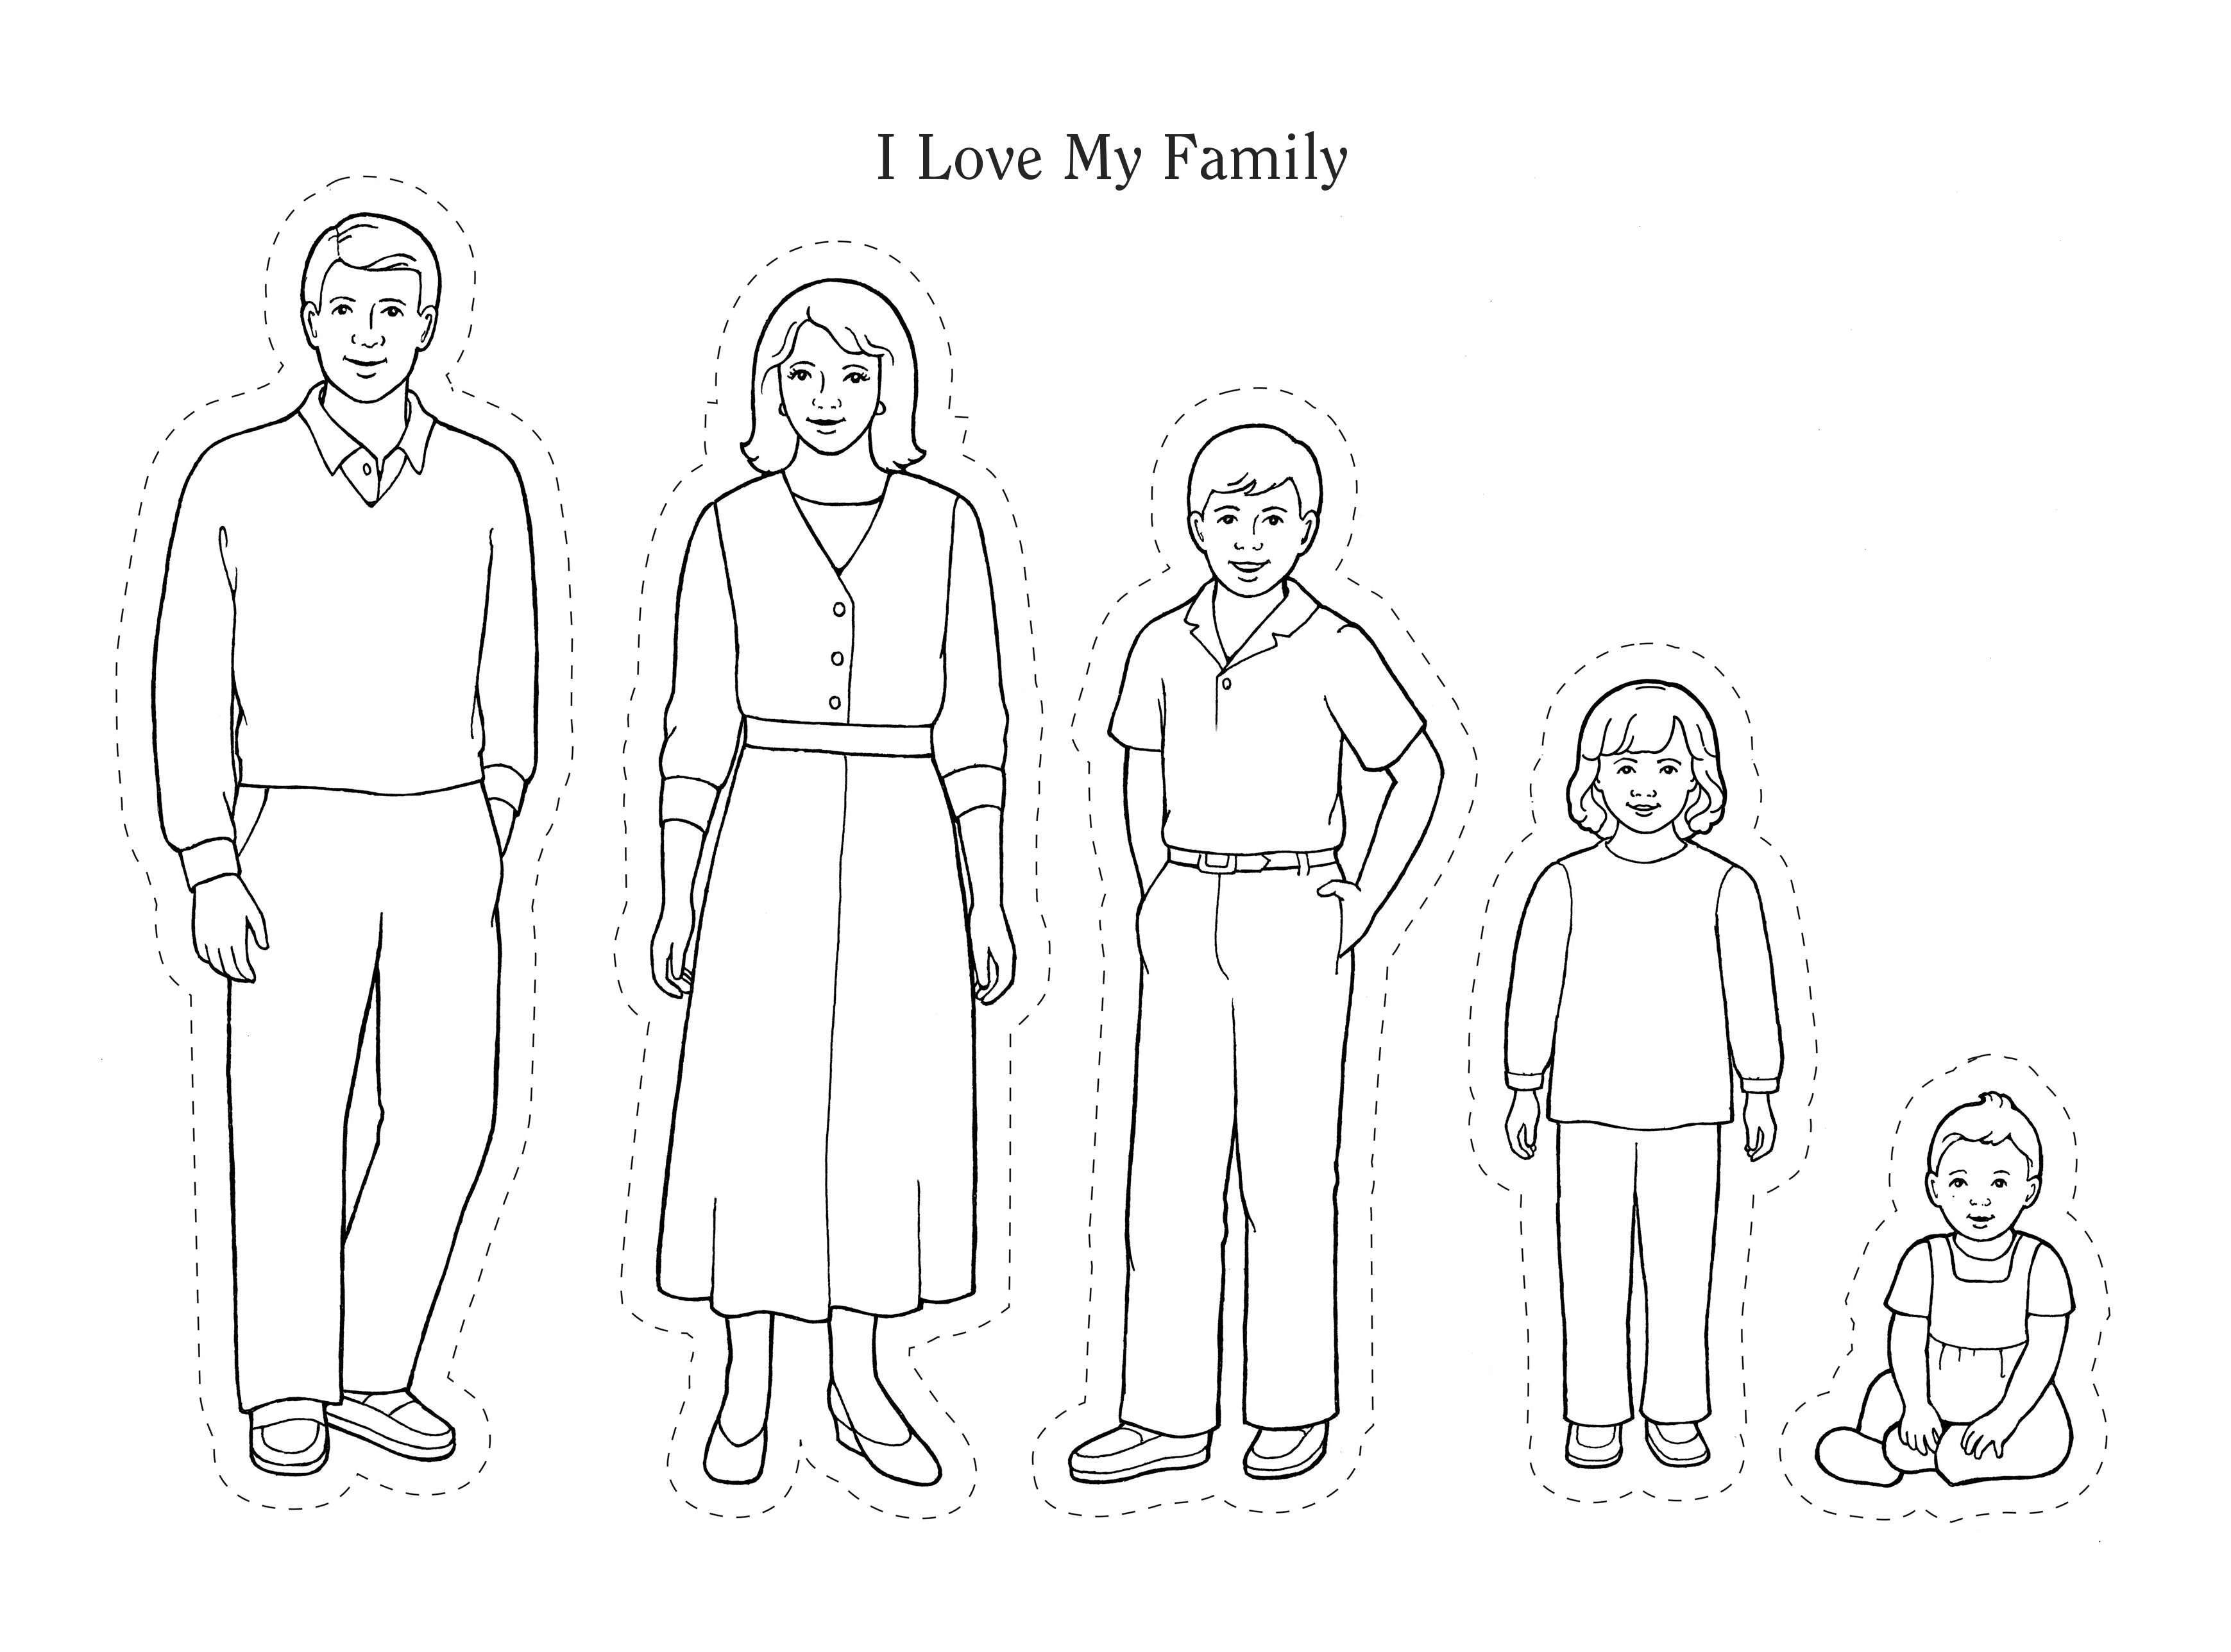 An illustration and activity from lesson 11, page 51 in the nursery manual Behold Your Little Ones (2008).